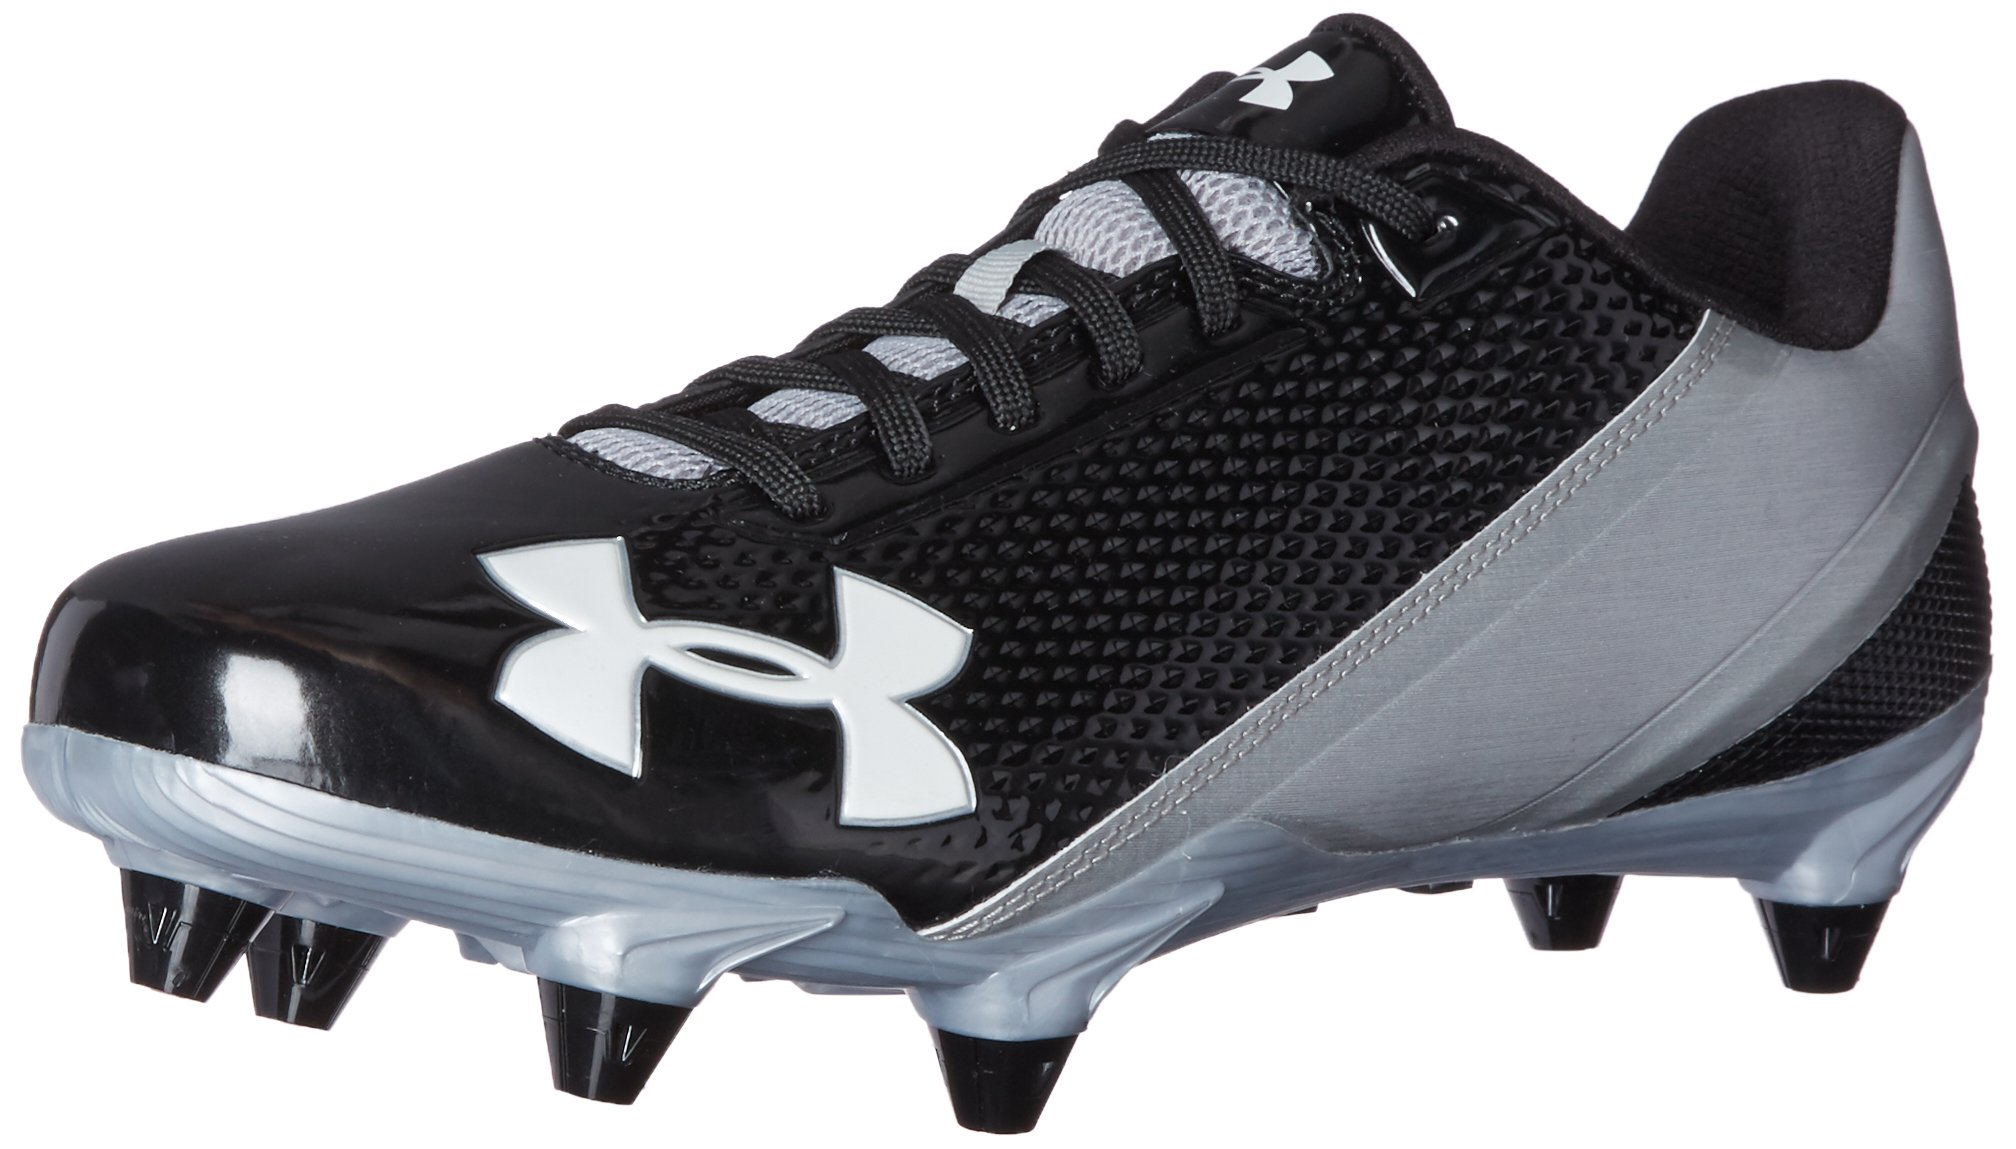 Under Armour Men's Speed Phantom Low D Football Shoe, Black (002)/Metallic Silver, 9.5 by Under Armour